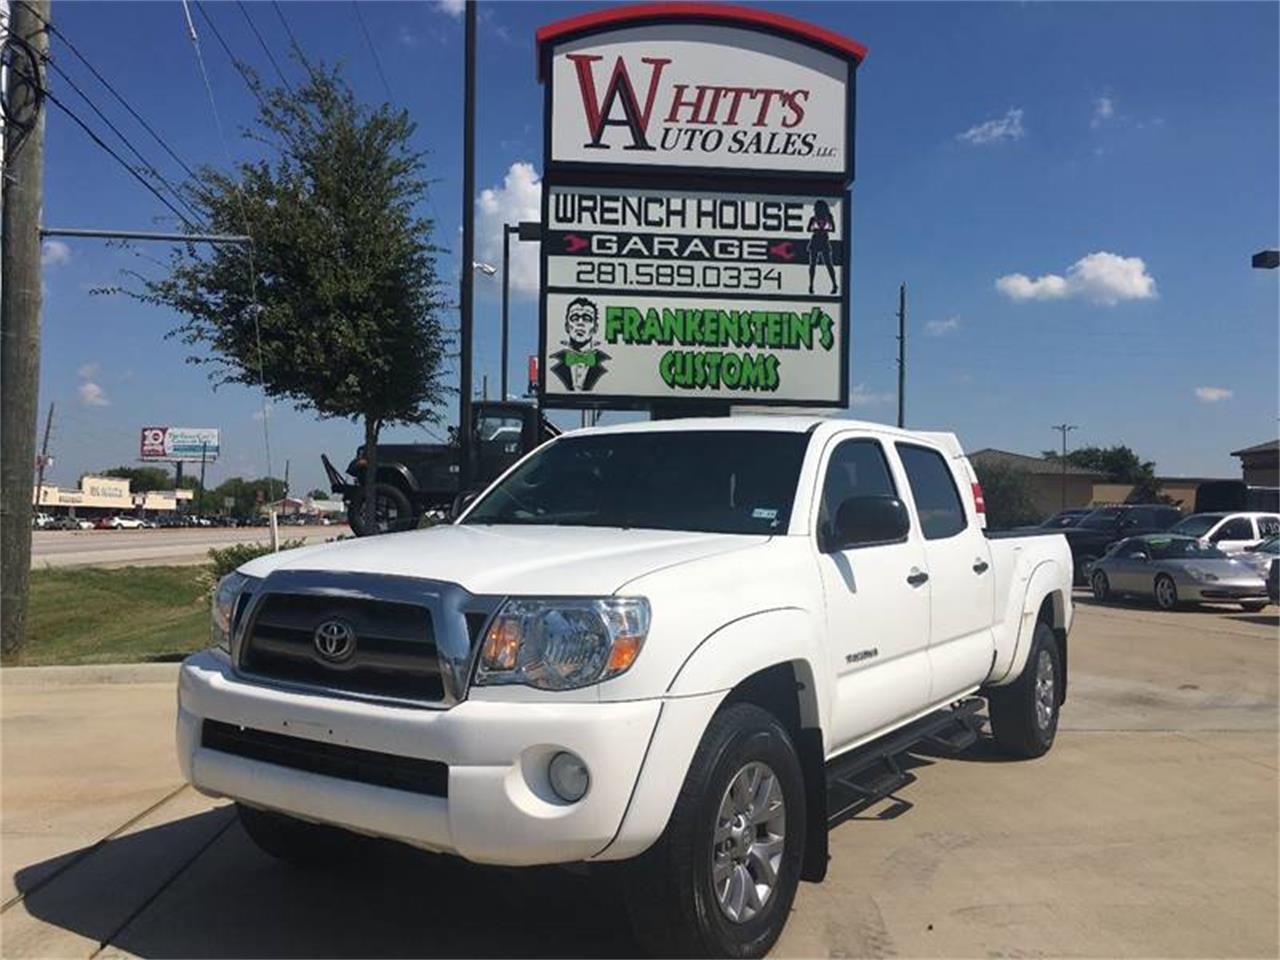 for sale 2010 toyota tacoma in houston, texas cars - houston, tx at geebo